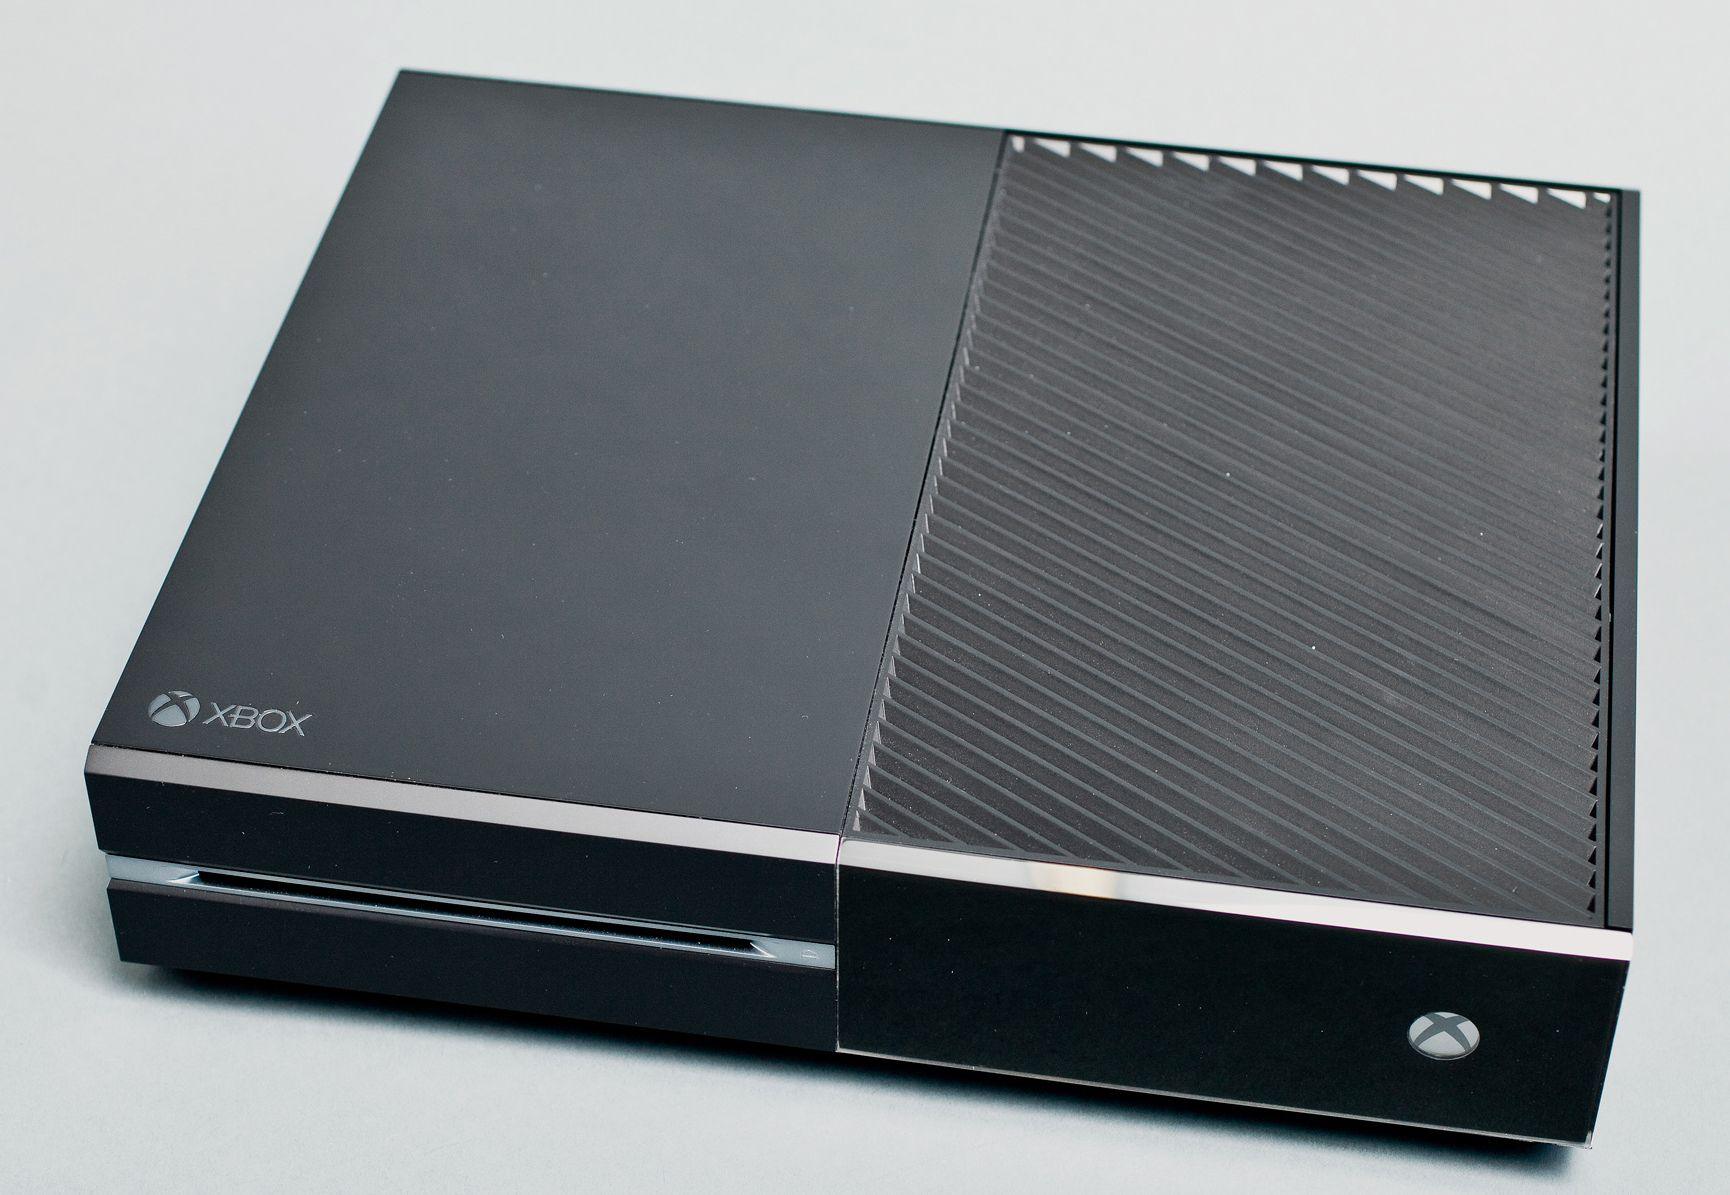 Xbox One multiple size comparisons